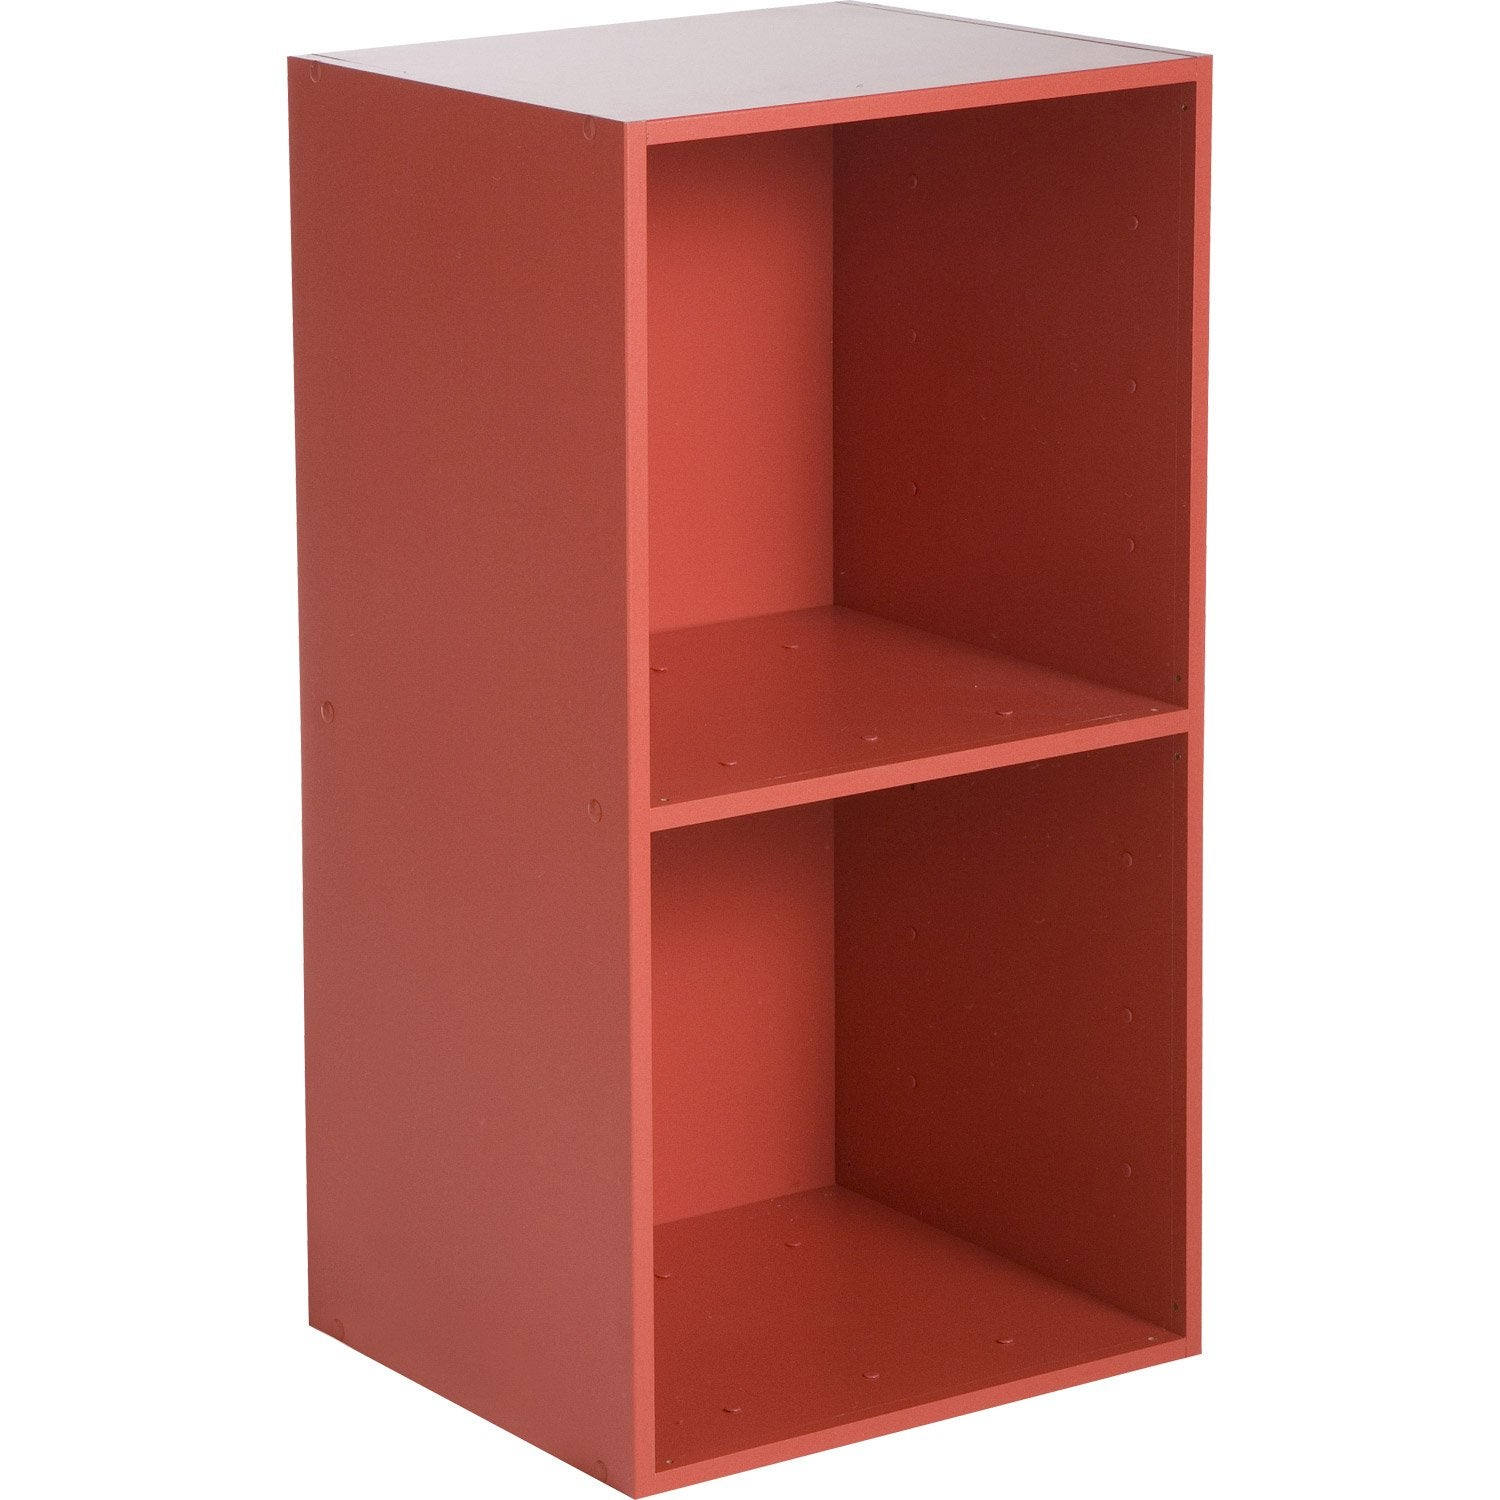 Etag re 2 cases multikaz rouge x x cm leroy merlin - Leroy merlin etagere metal ...